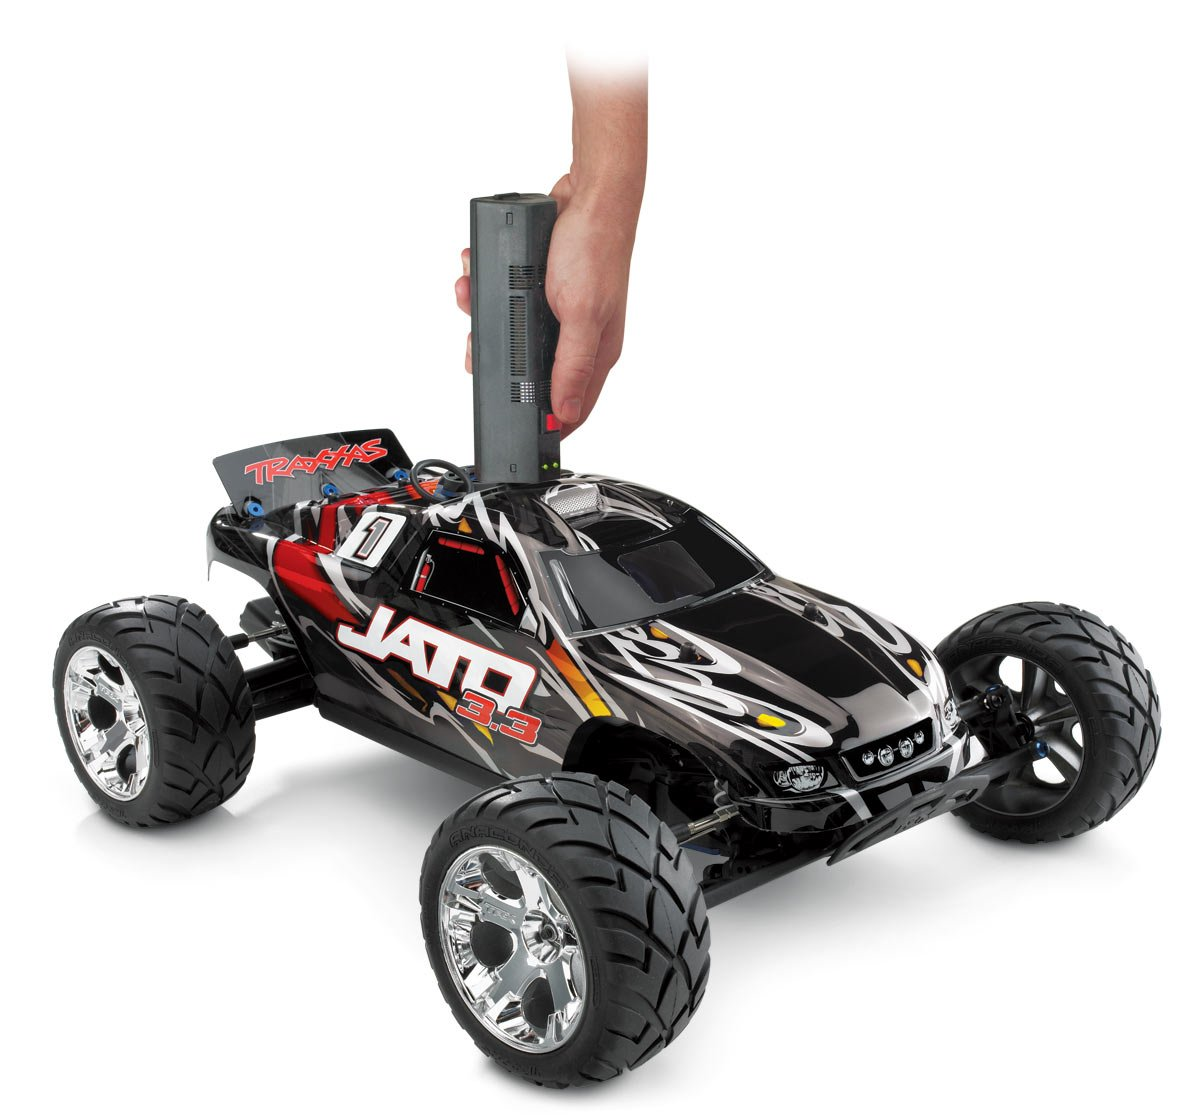 Fastest Rc Trucks These Models Arent Just For Off Road Additionally Traxxas Slash 4x4 Slipper Clutch On Parts Diagram Furthermore The Tqi Transmitter Comes With A Link Wireless Module That Lets You Use Your Smartphone As Powerful Tuning Tool Any Model